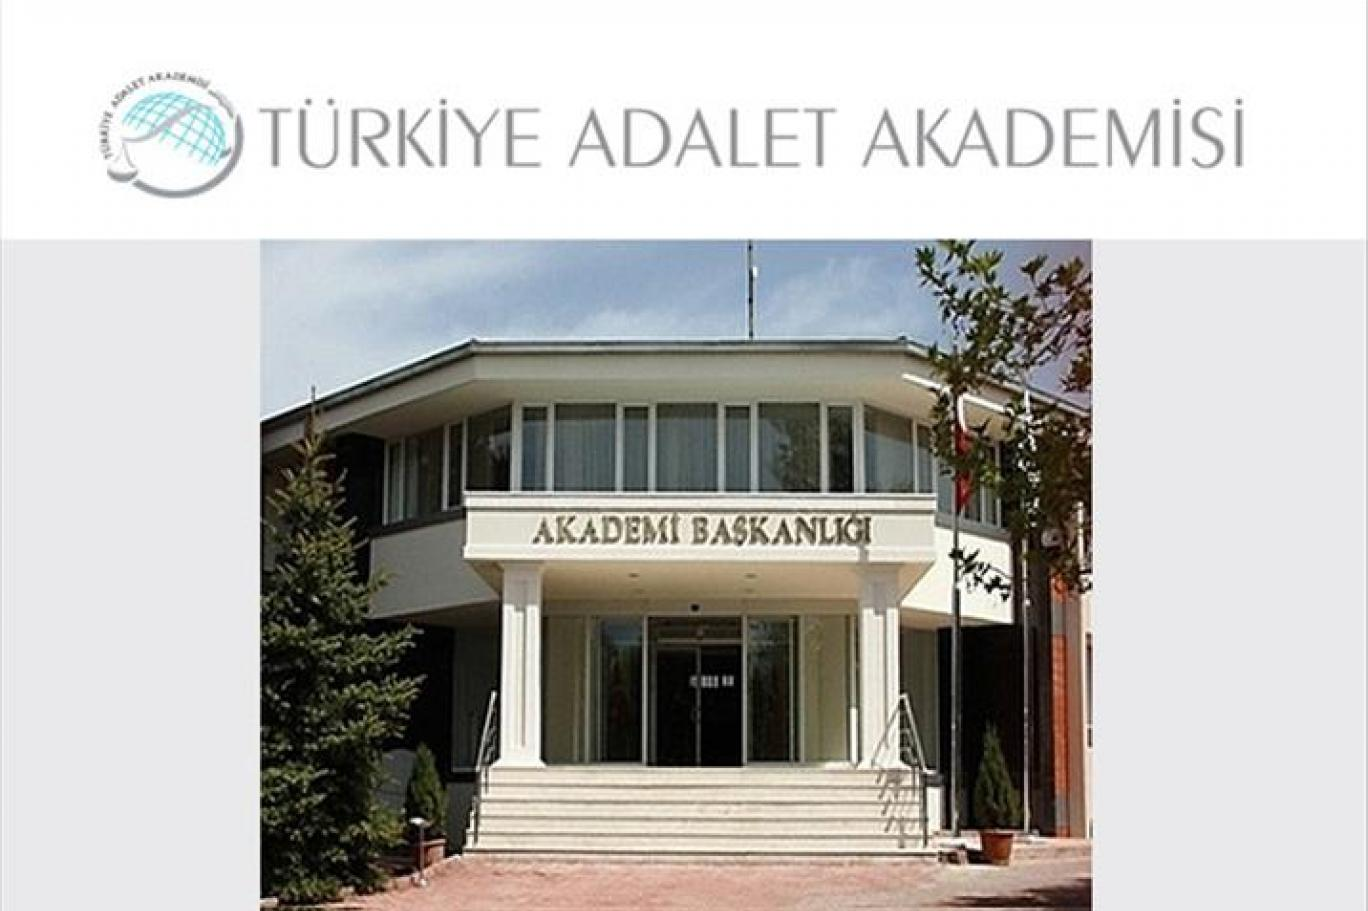 independent turkce